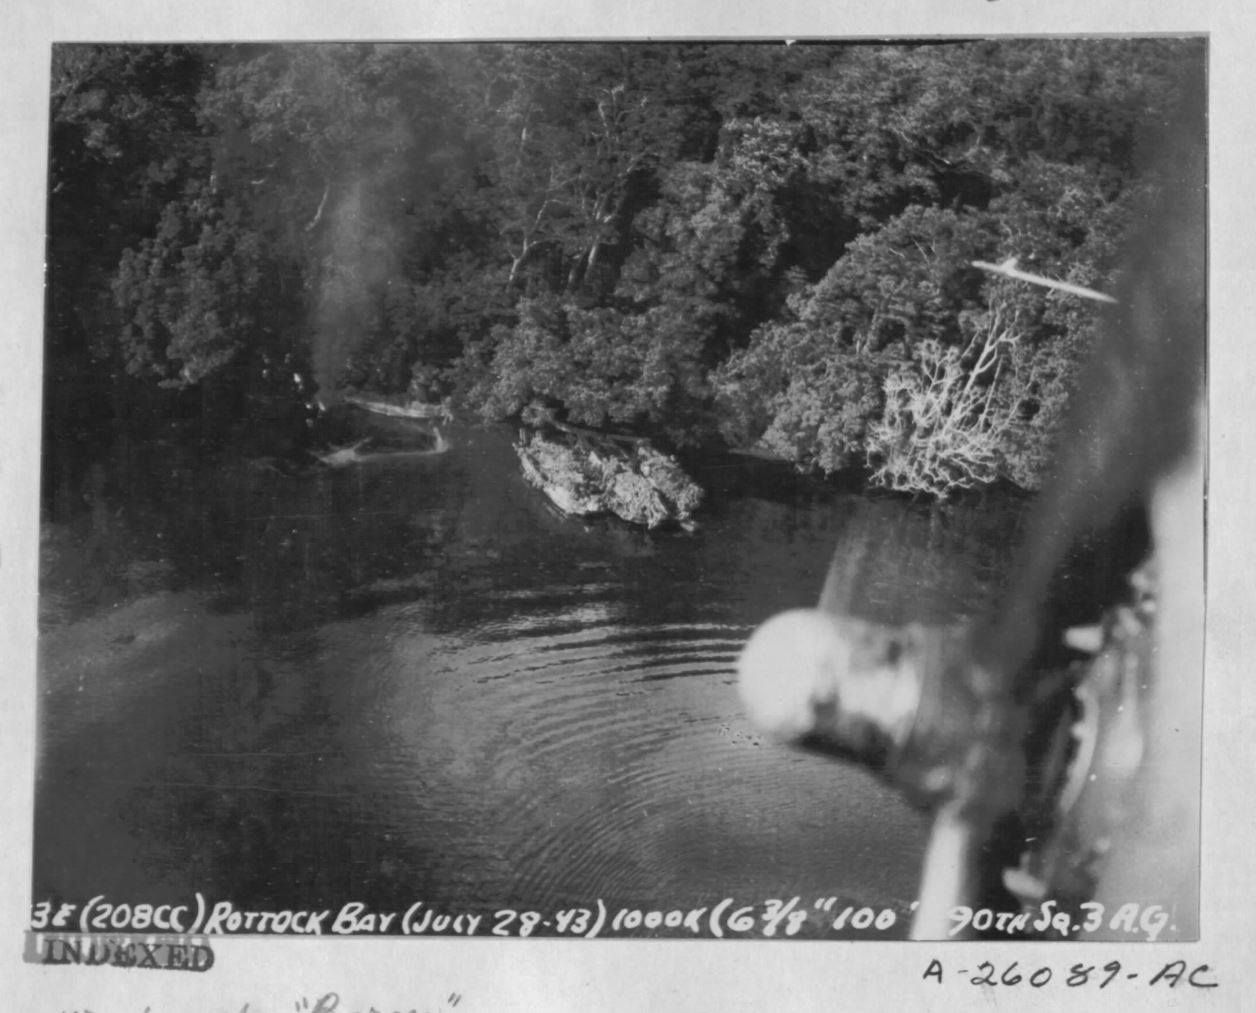 USAAF B 26B Marauder 5AF bombing Barges in Borgen Bay New Britain note shadows of attacking USAAF B 26s above Nov 1943 021